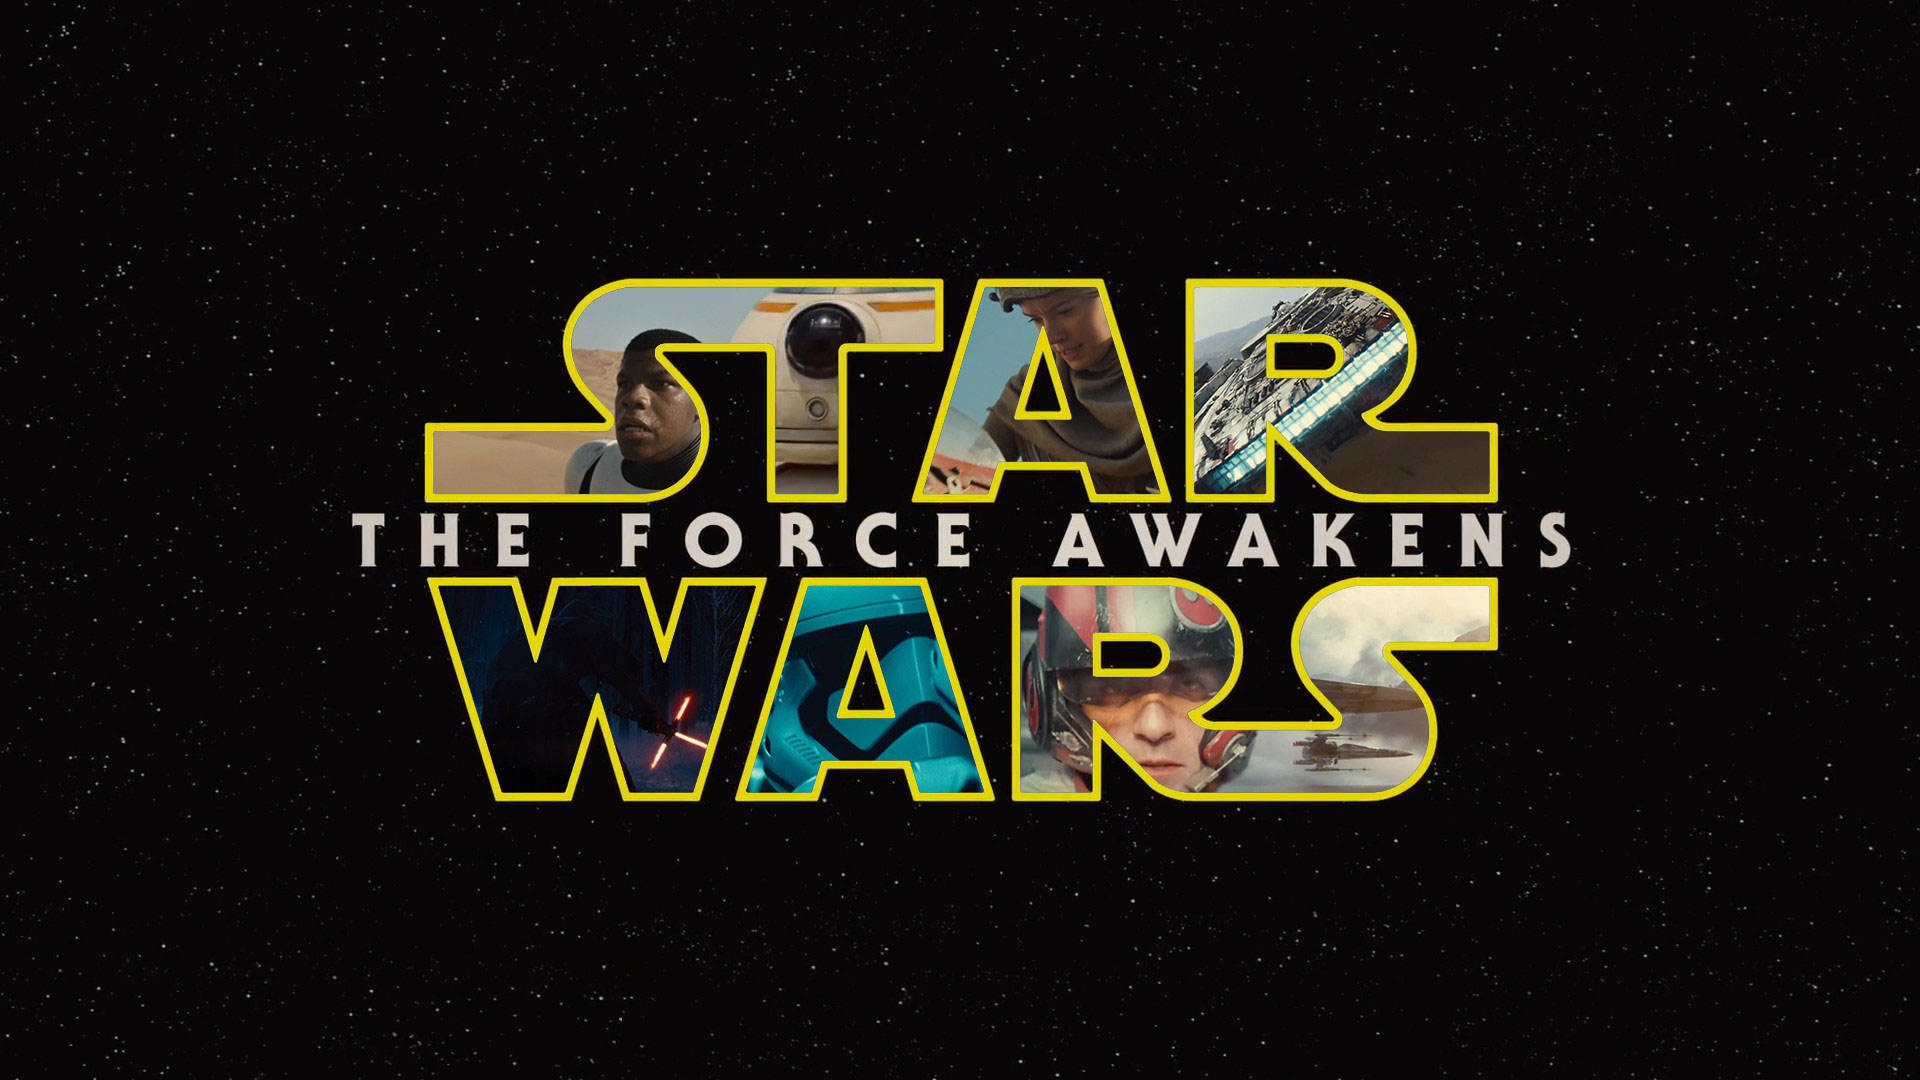 SW-THE-FORCE-AWAKENS (1)